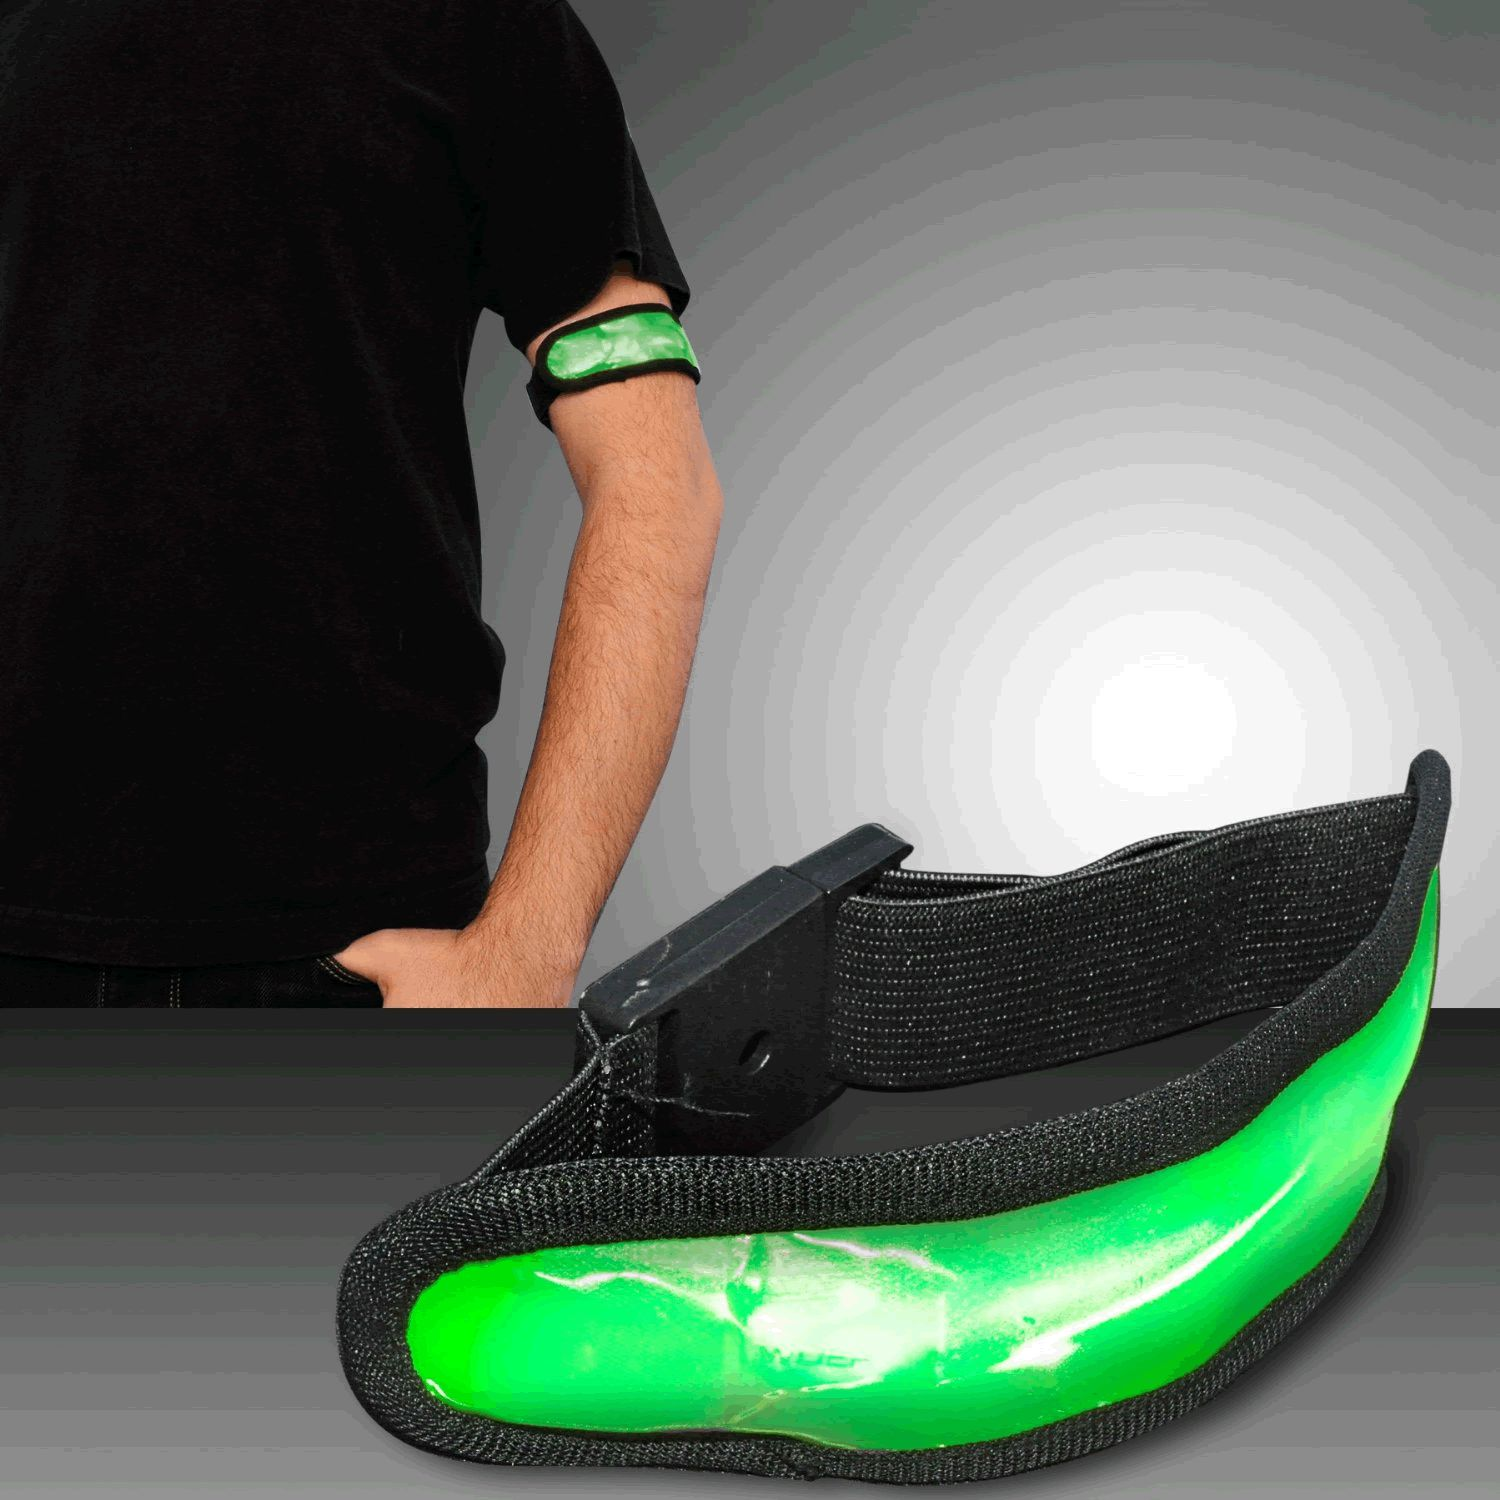 Jogging Bicycling LED Armband Green by Blinkee